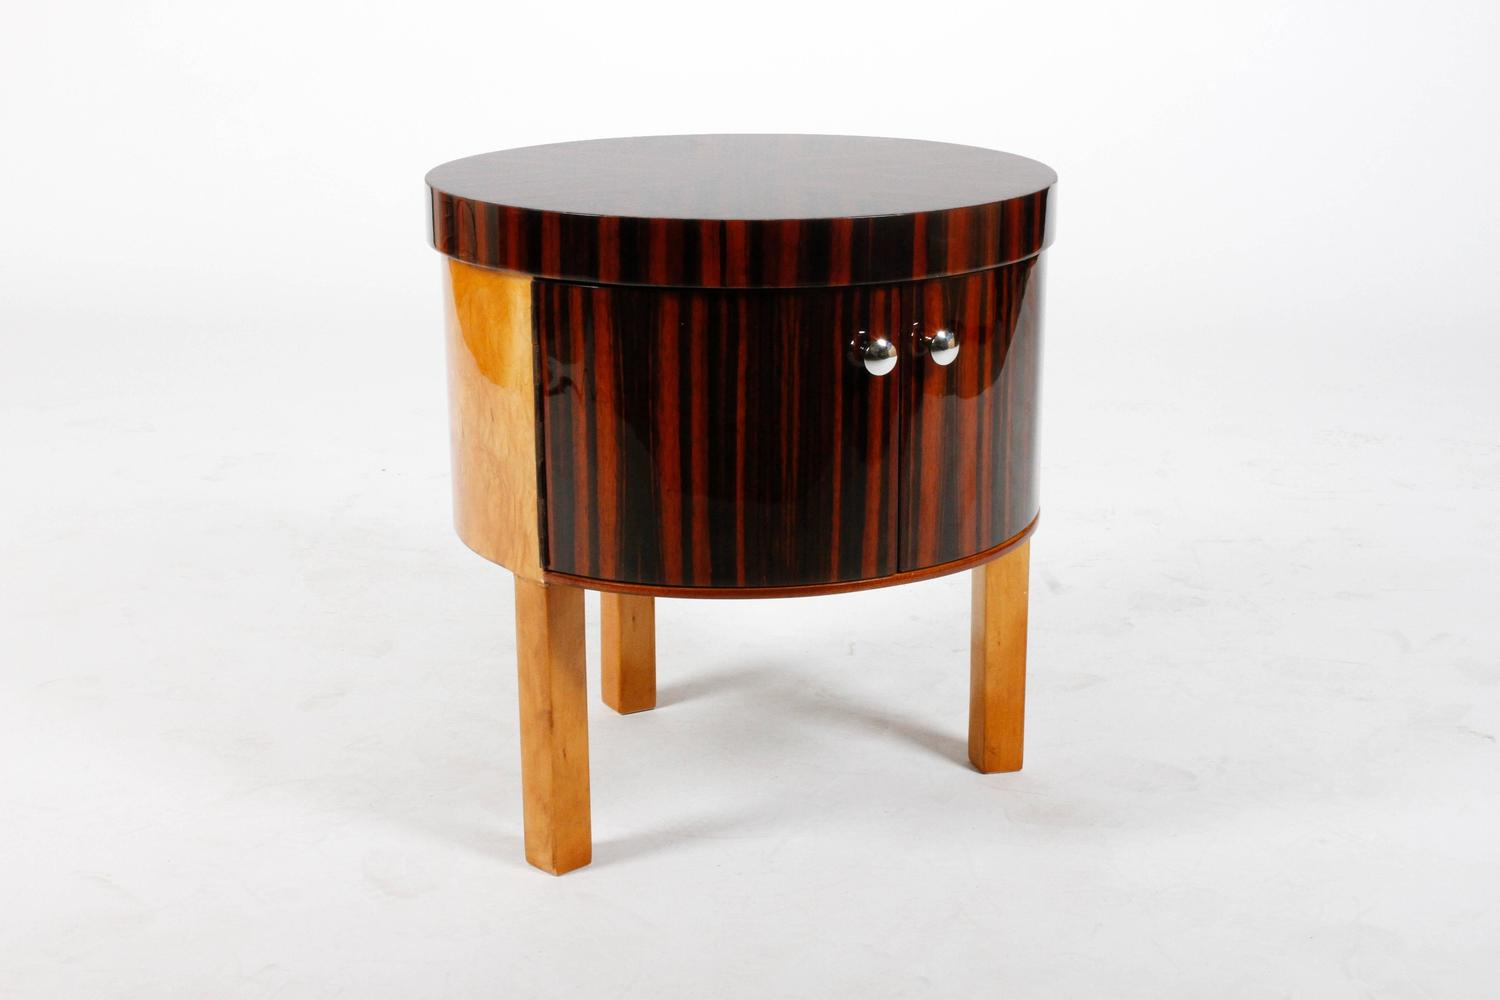 Art deco drum tables at 1stdibs for Art deco furniture chicago